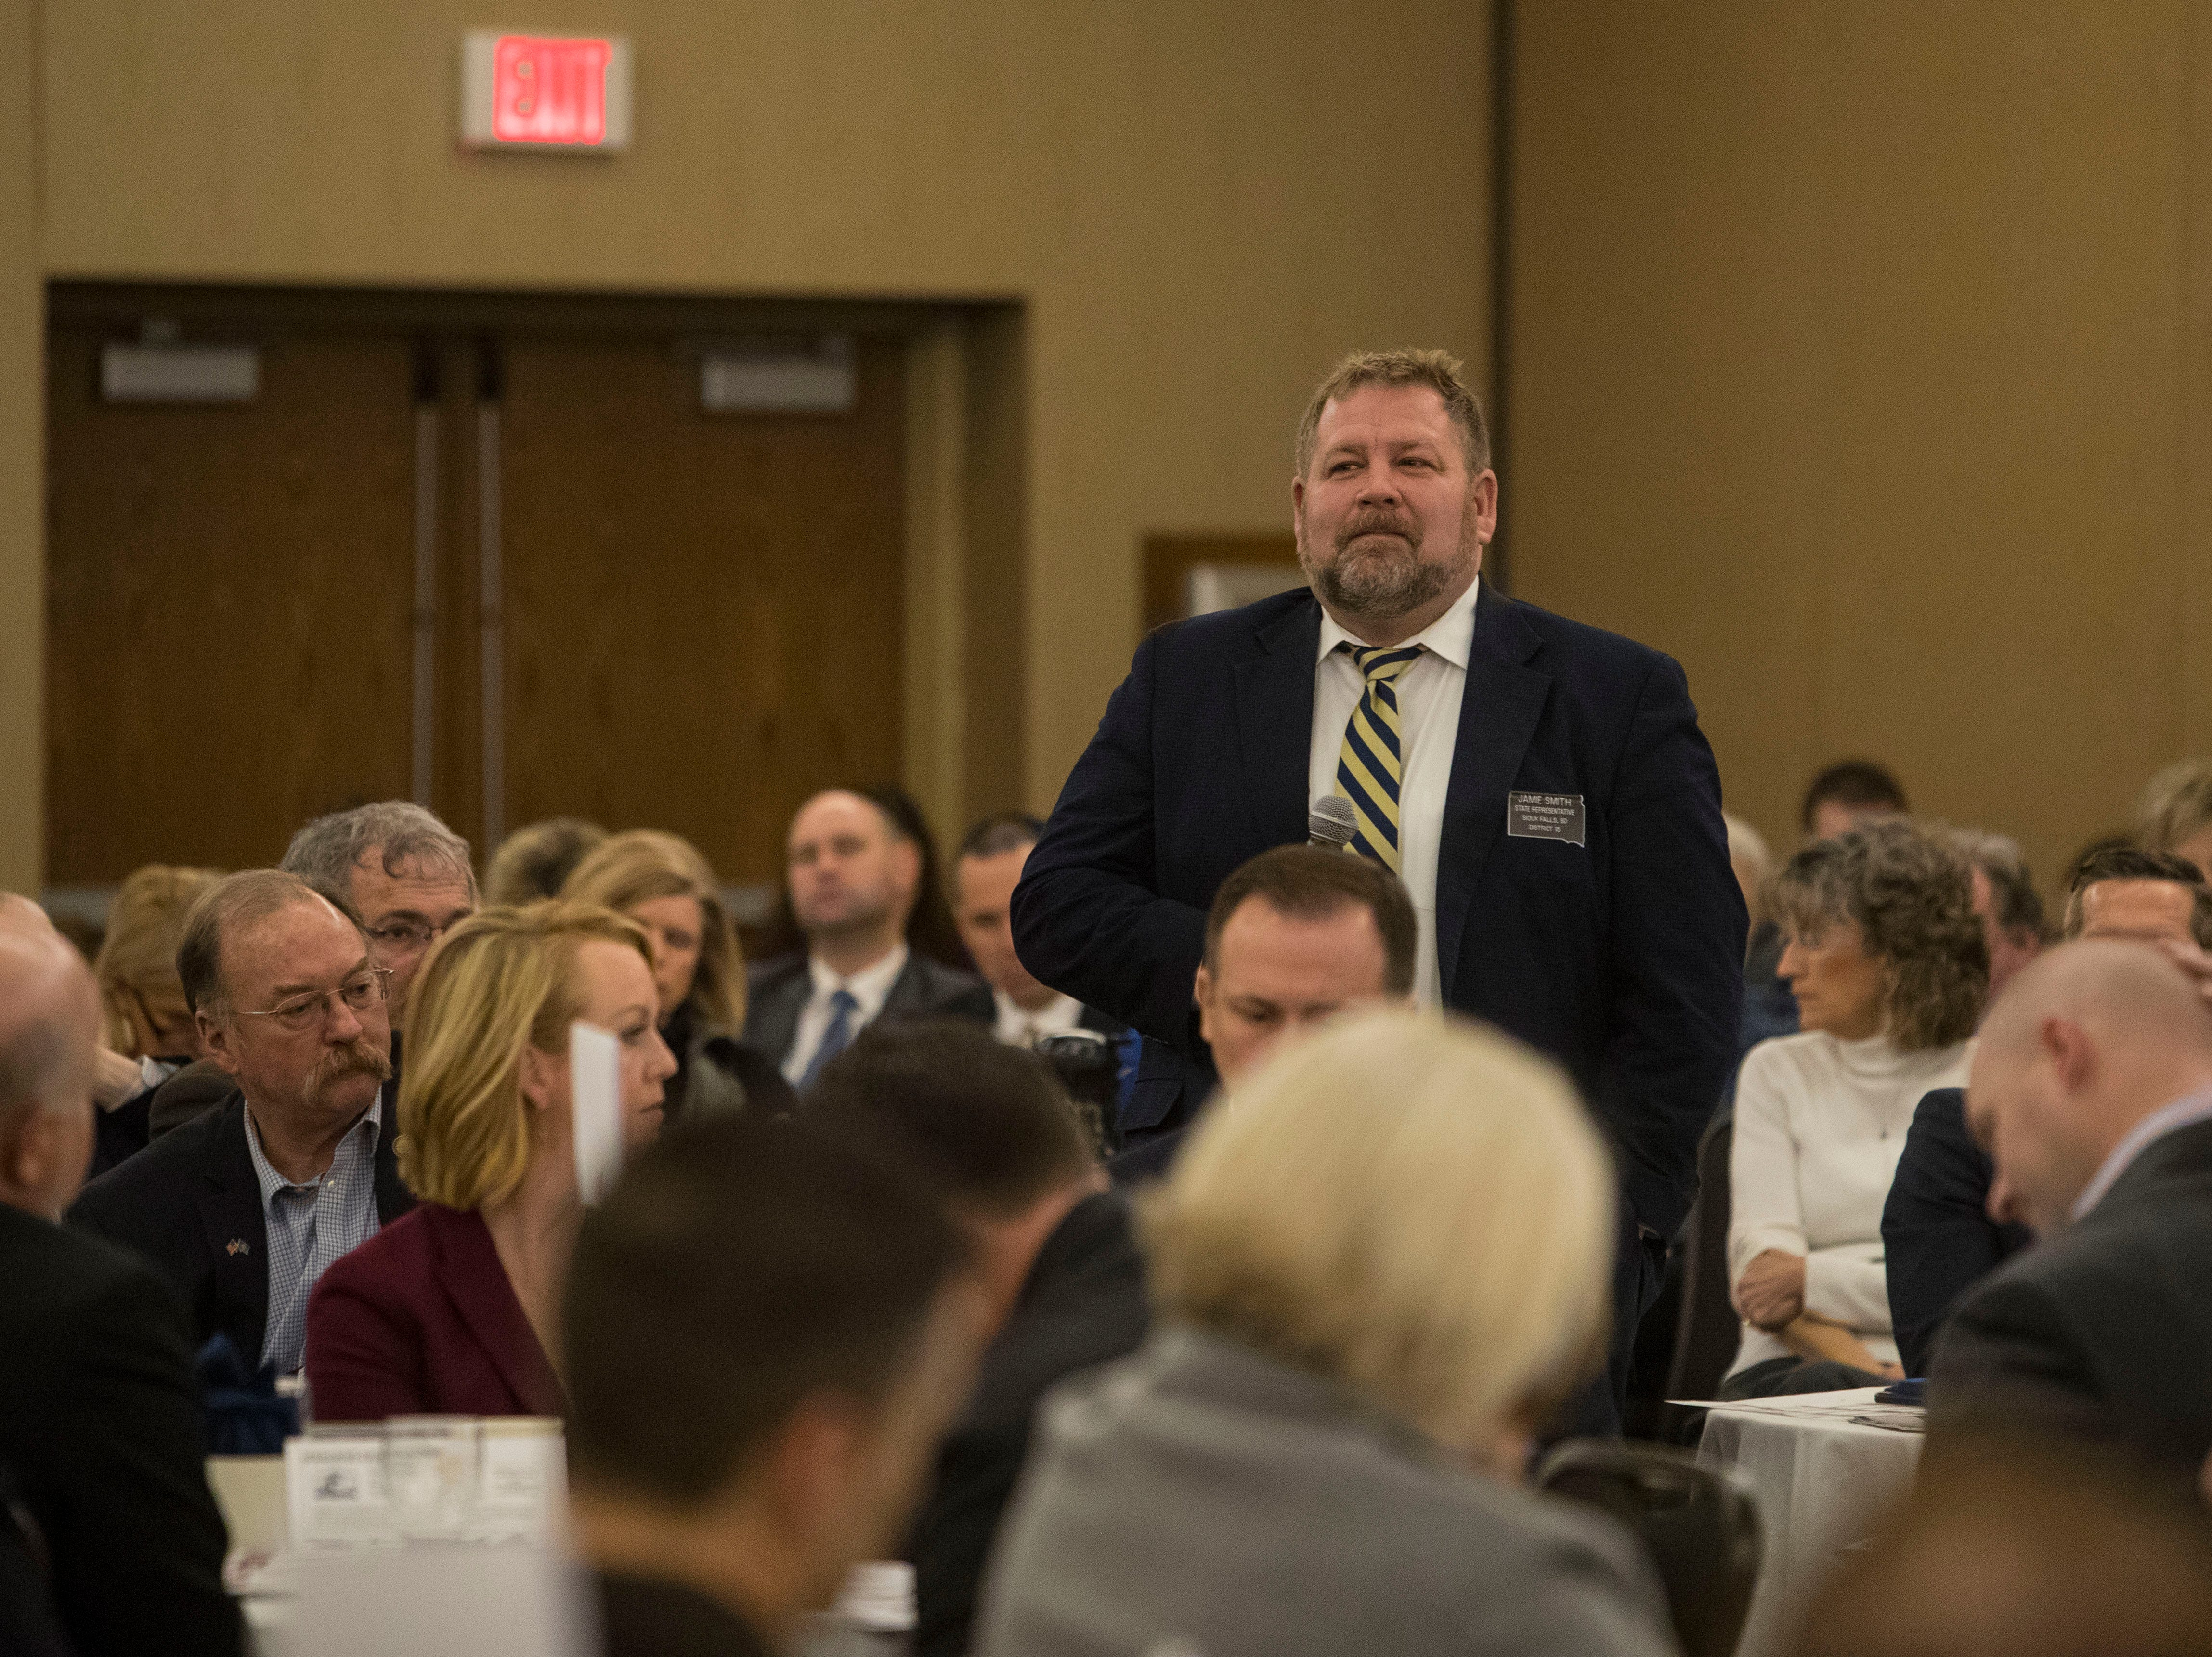 Rep. Jamie Smith, District 15, speaks at the Chamber of Commerce legislative breakfast, Thursday, Jan. 3, 2019 at the Best Western Plus Ramkota Hotel in Sioux Falls, S.D.